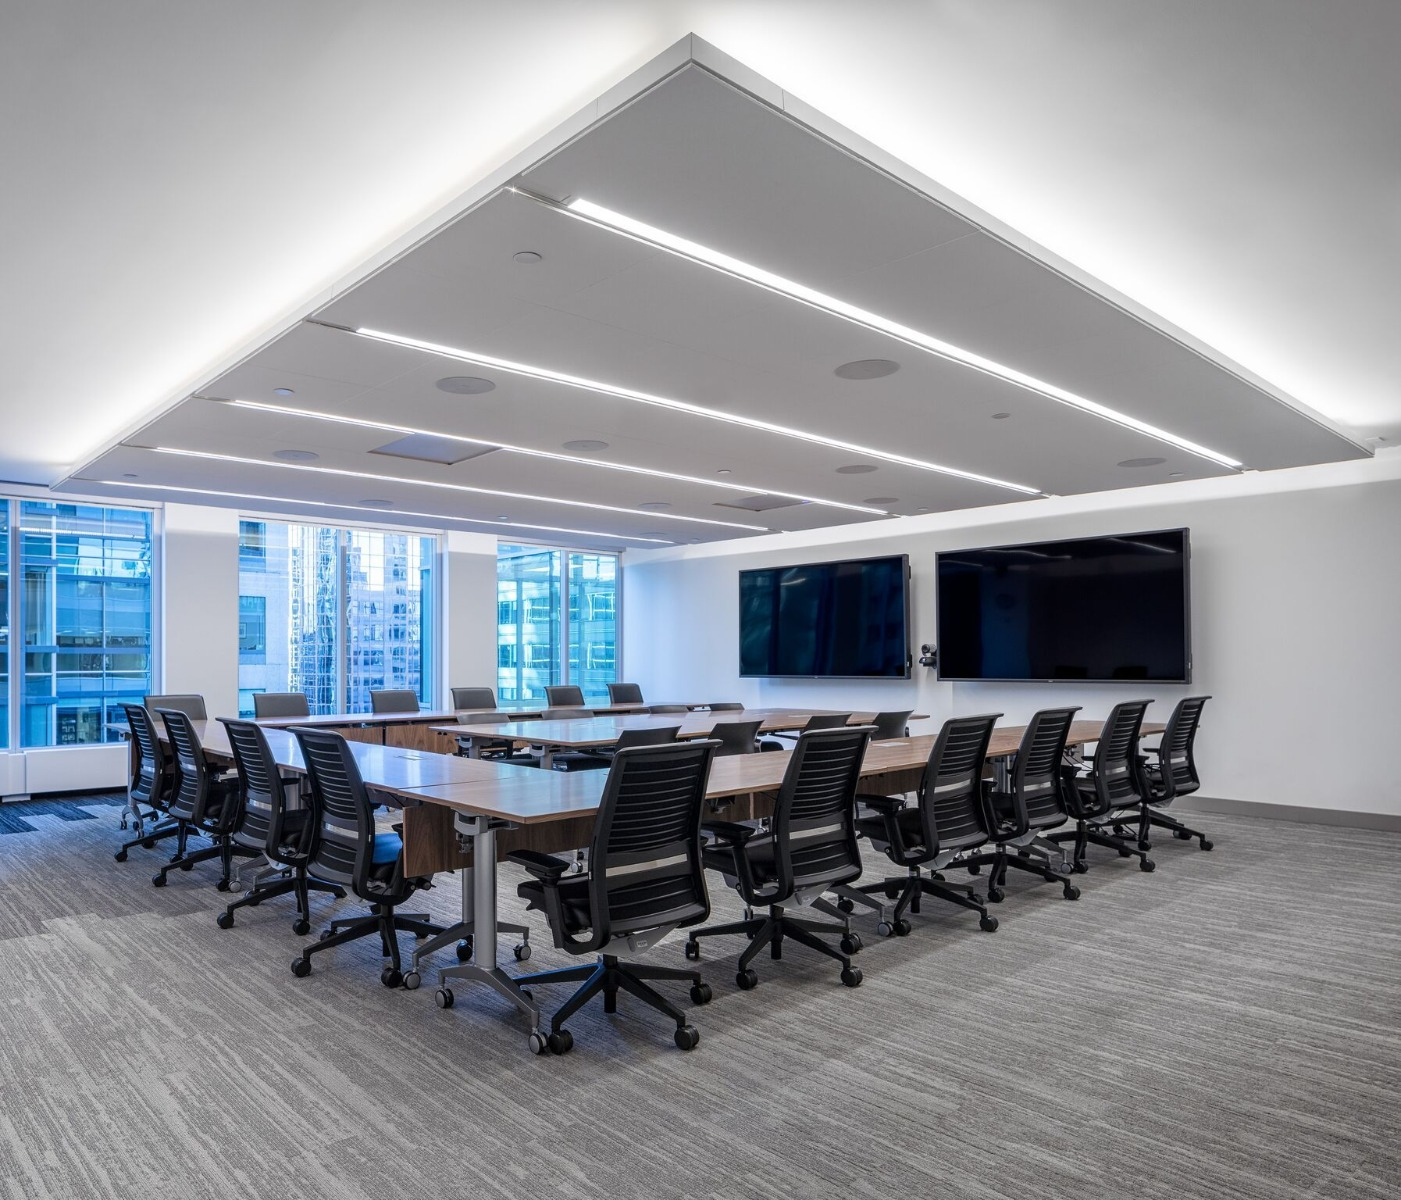 Recommended light levels for different types of work spaces are indicated below: